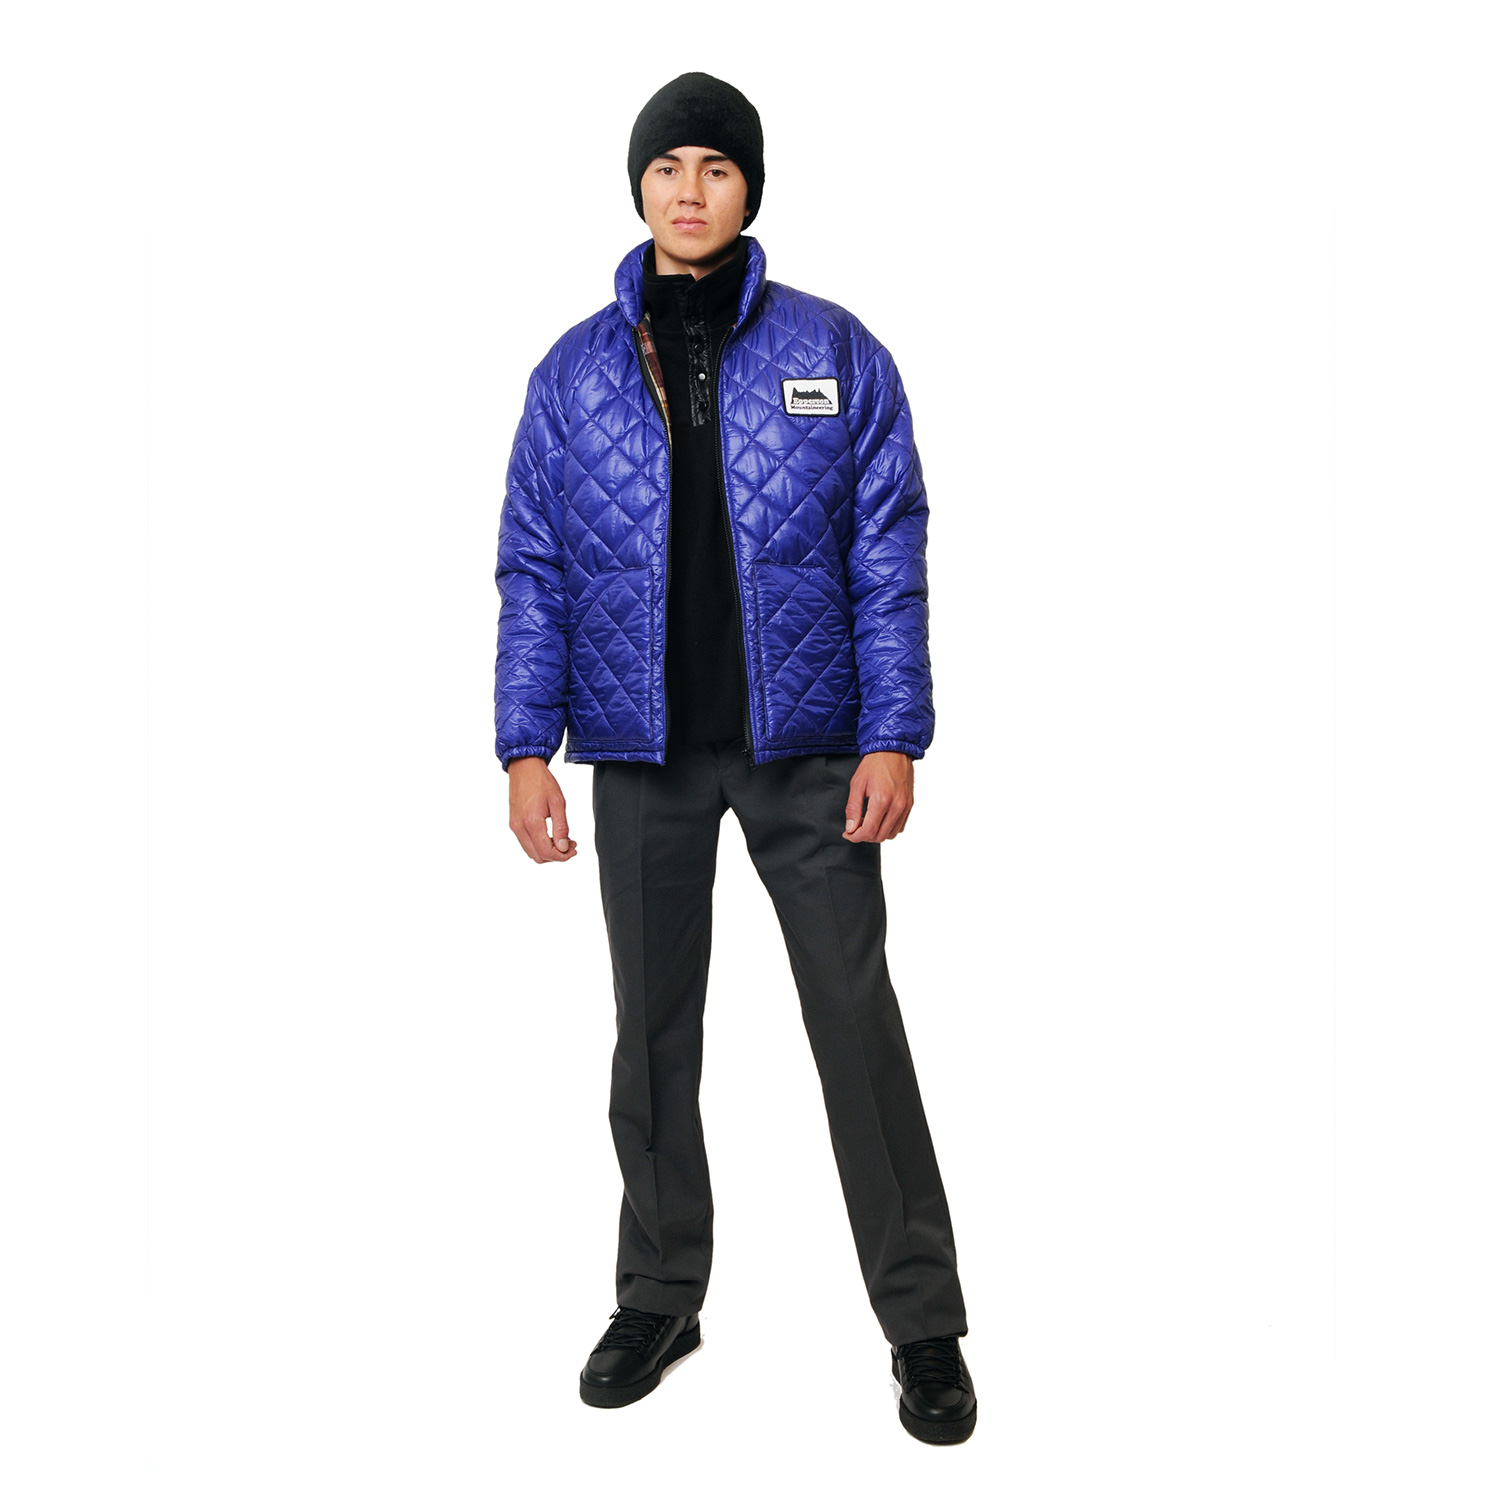 4.-QUILTED-JACKET,-PURPLE,-BACK,-Fitting-(DIV_3629).jpg